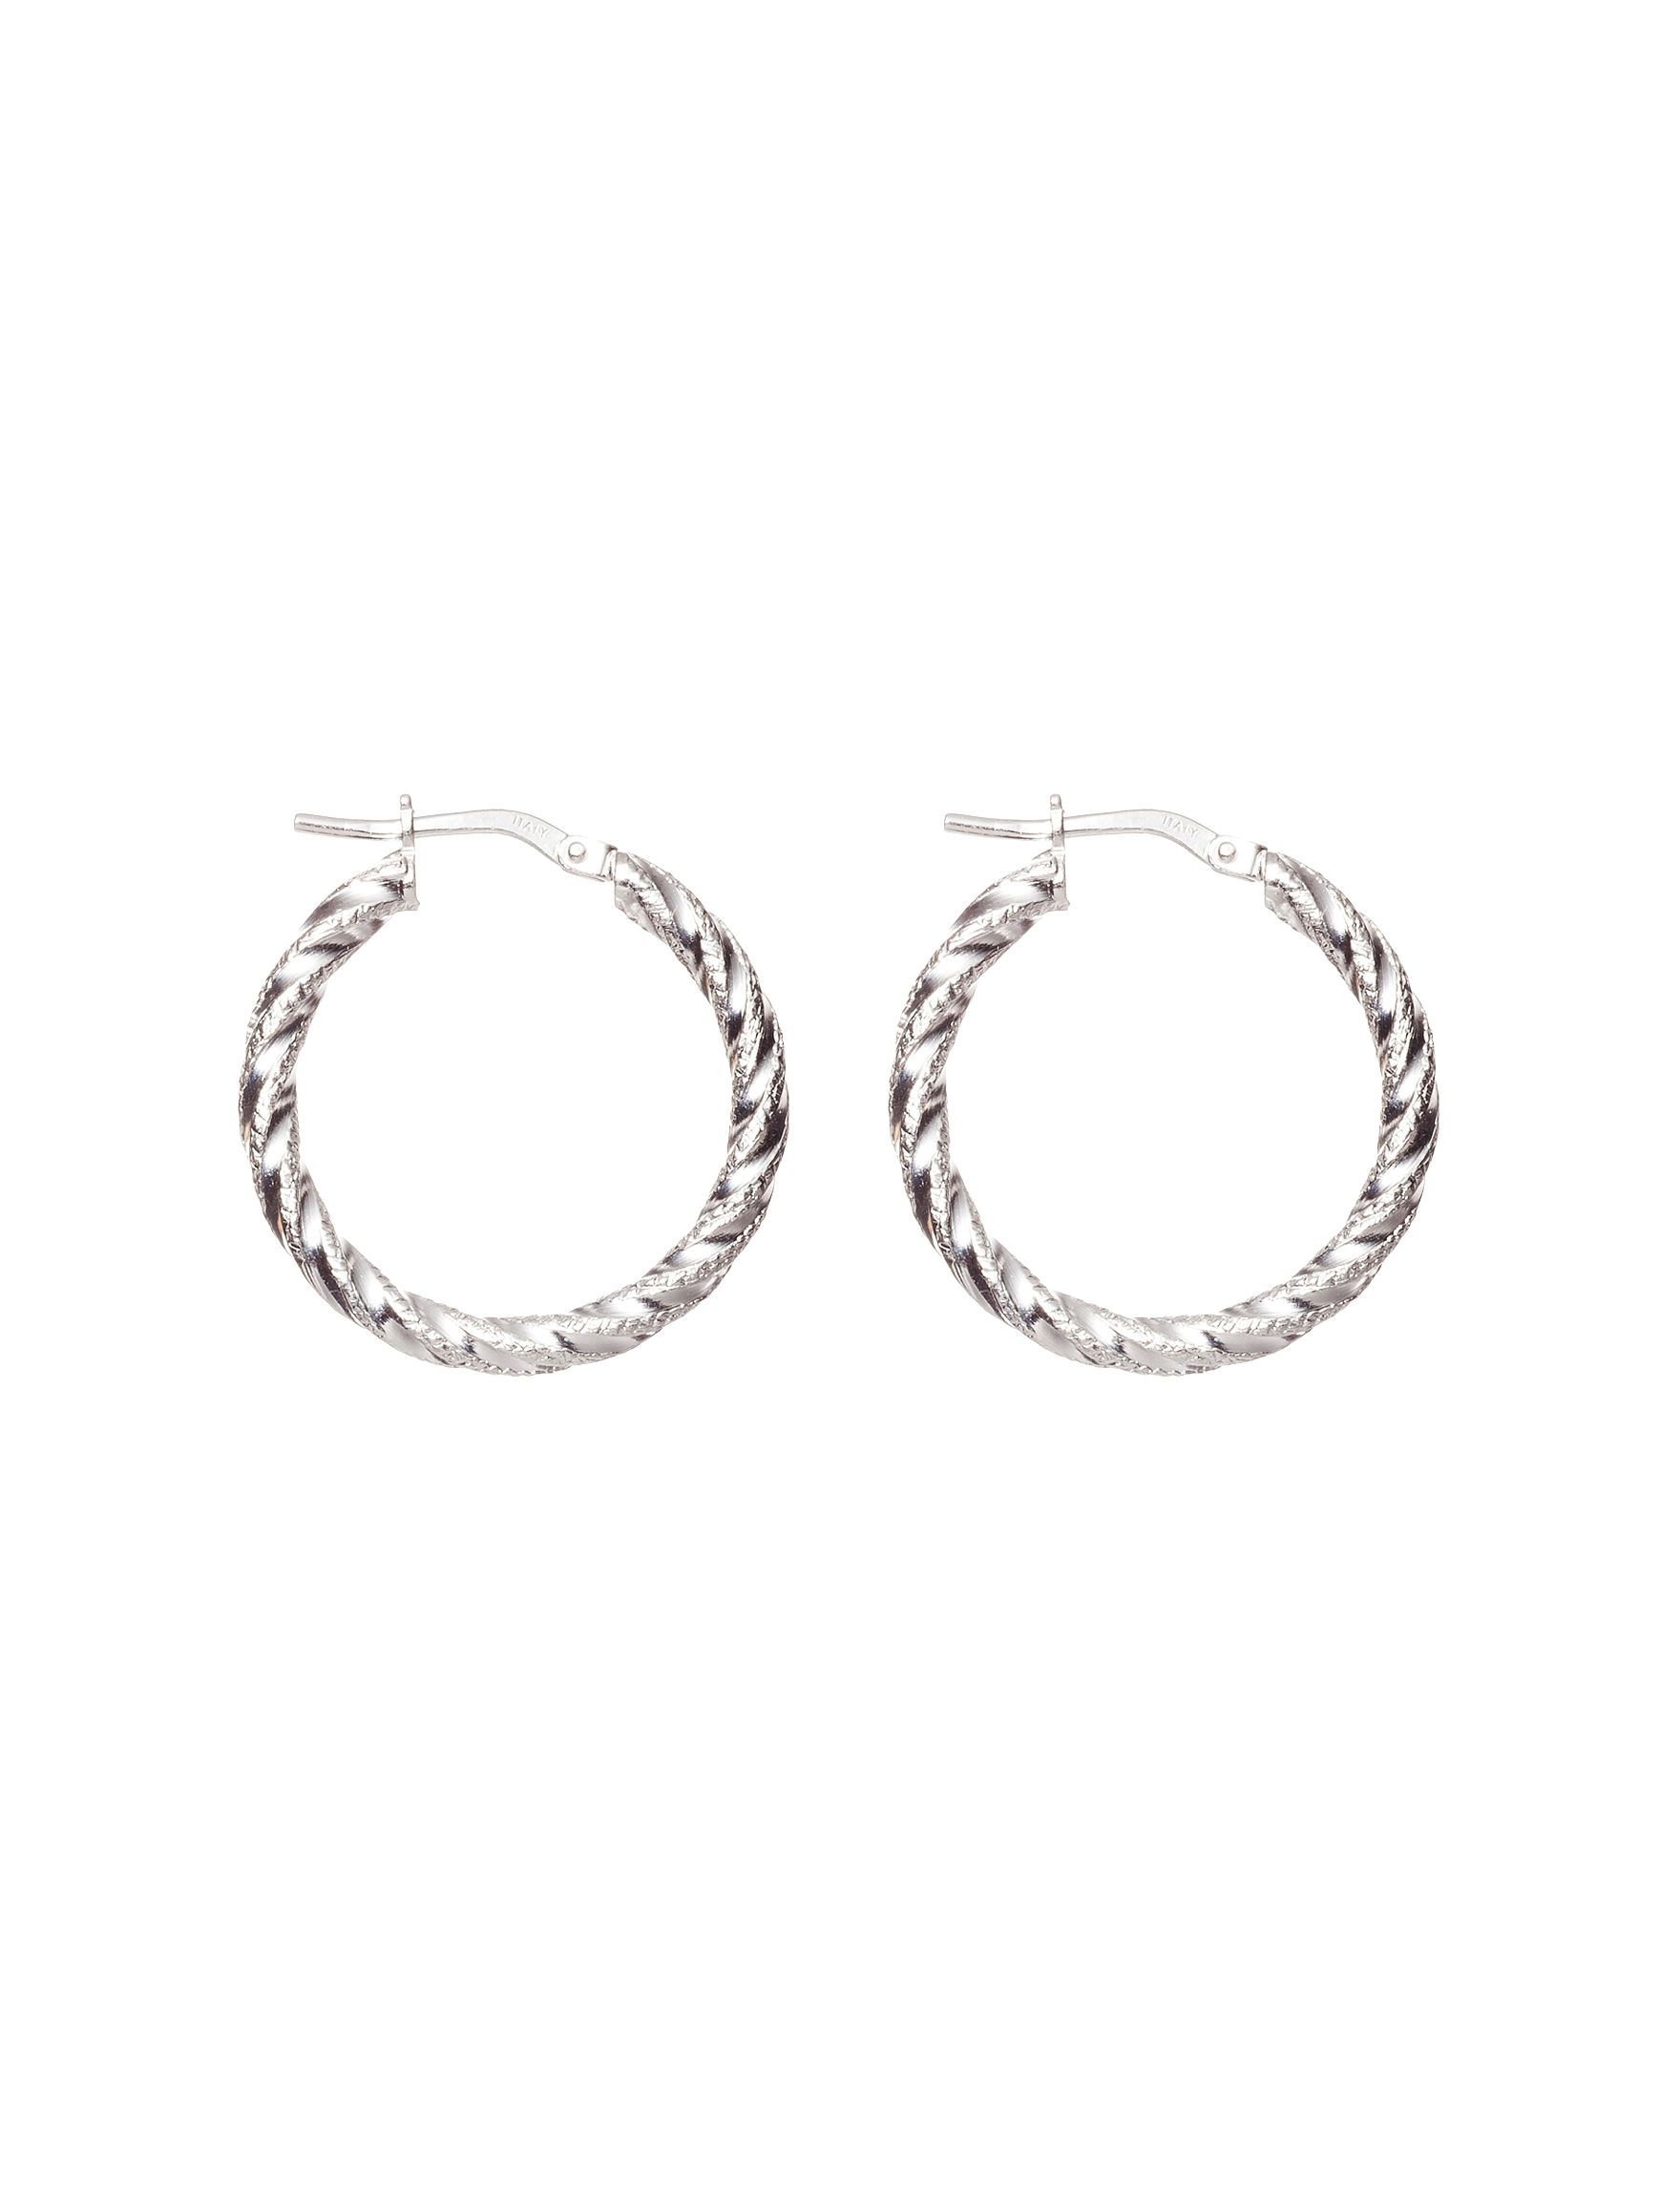 Danecraft Silver Hoops Earrings Fine Jewelry